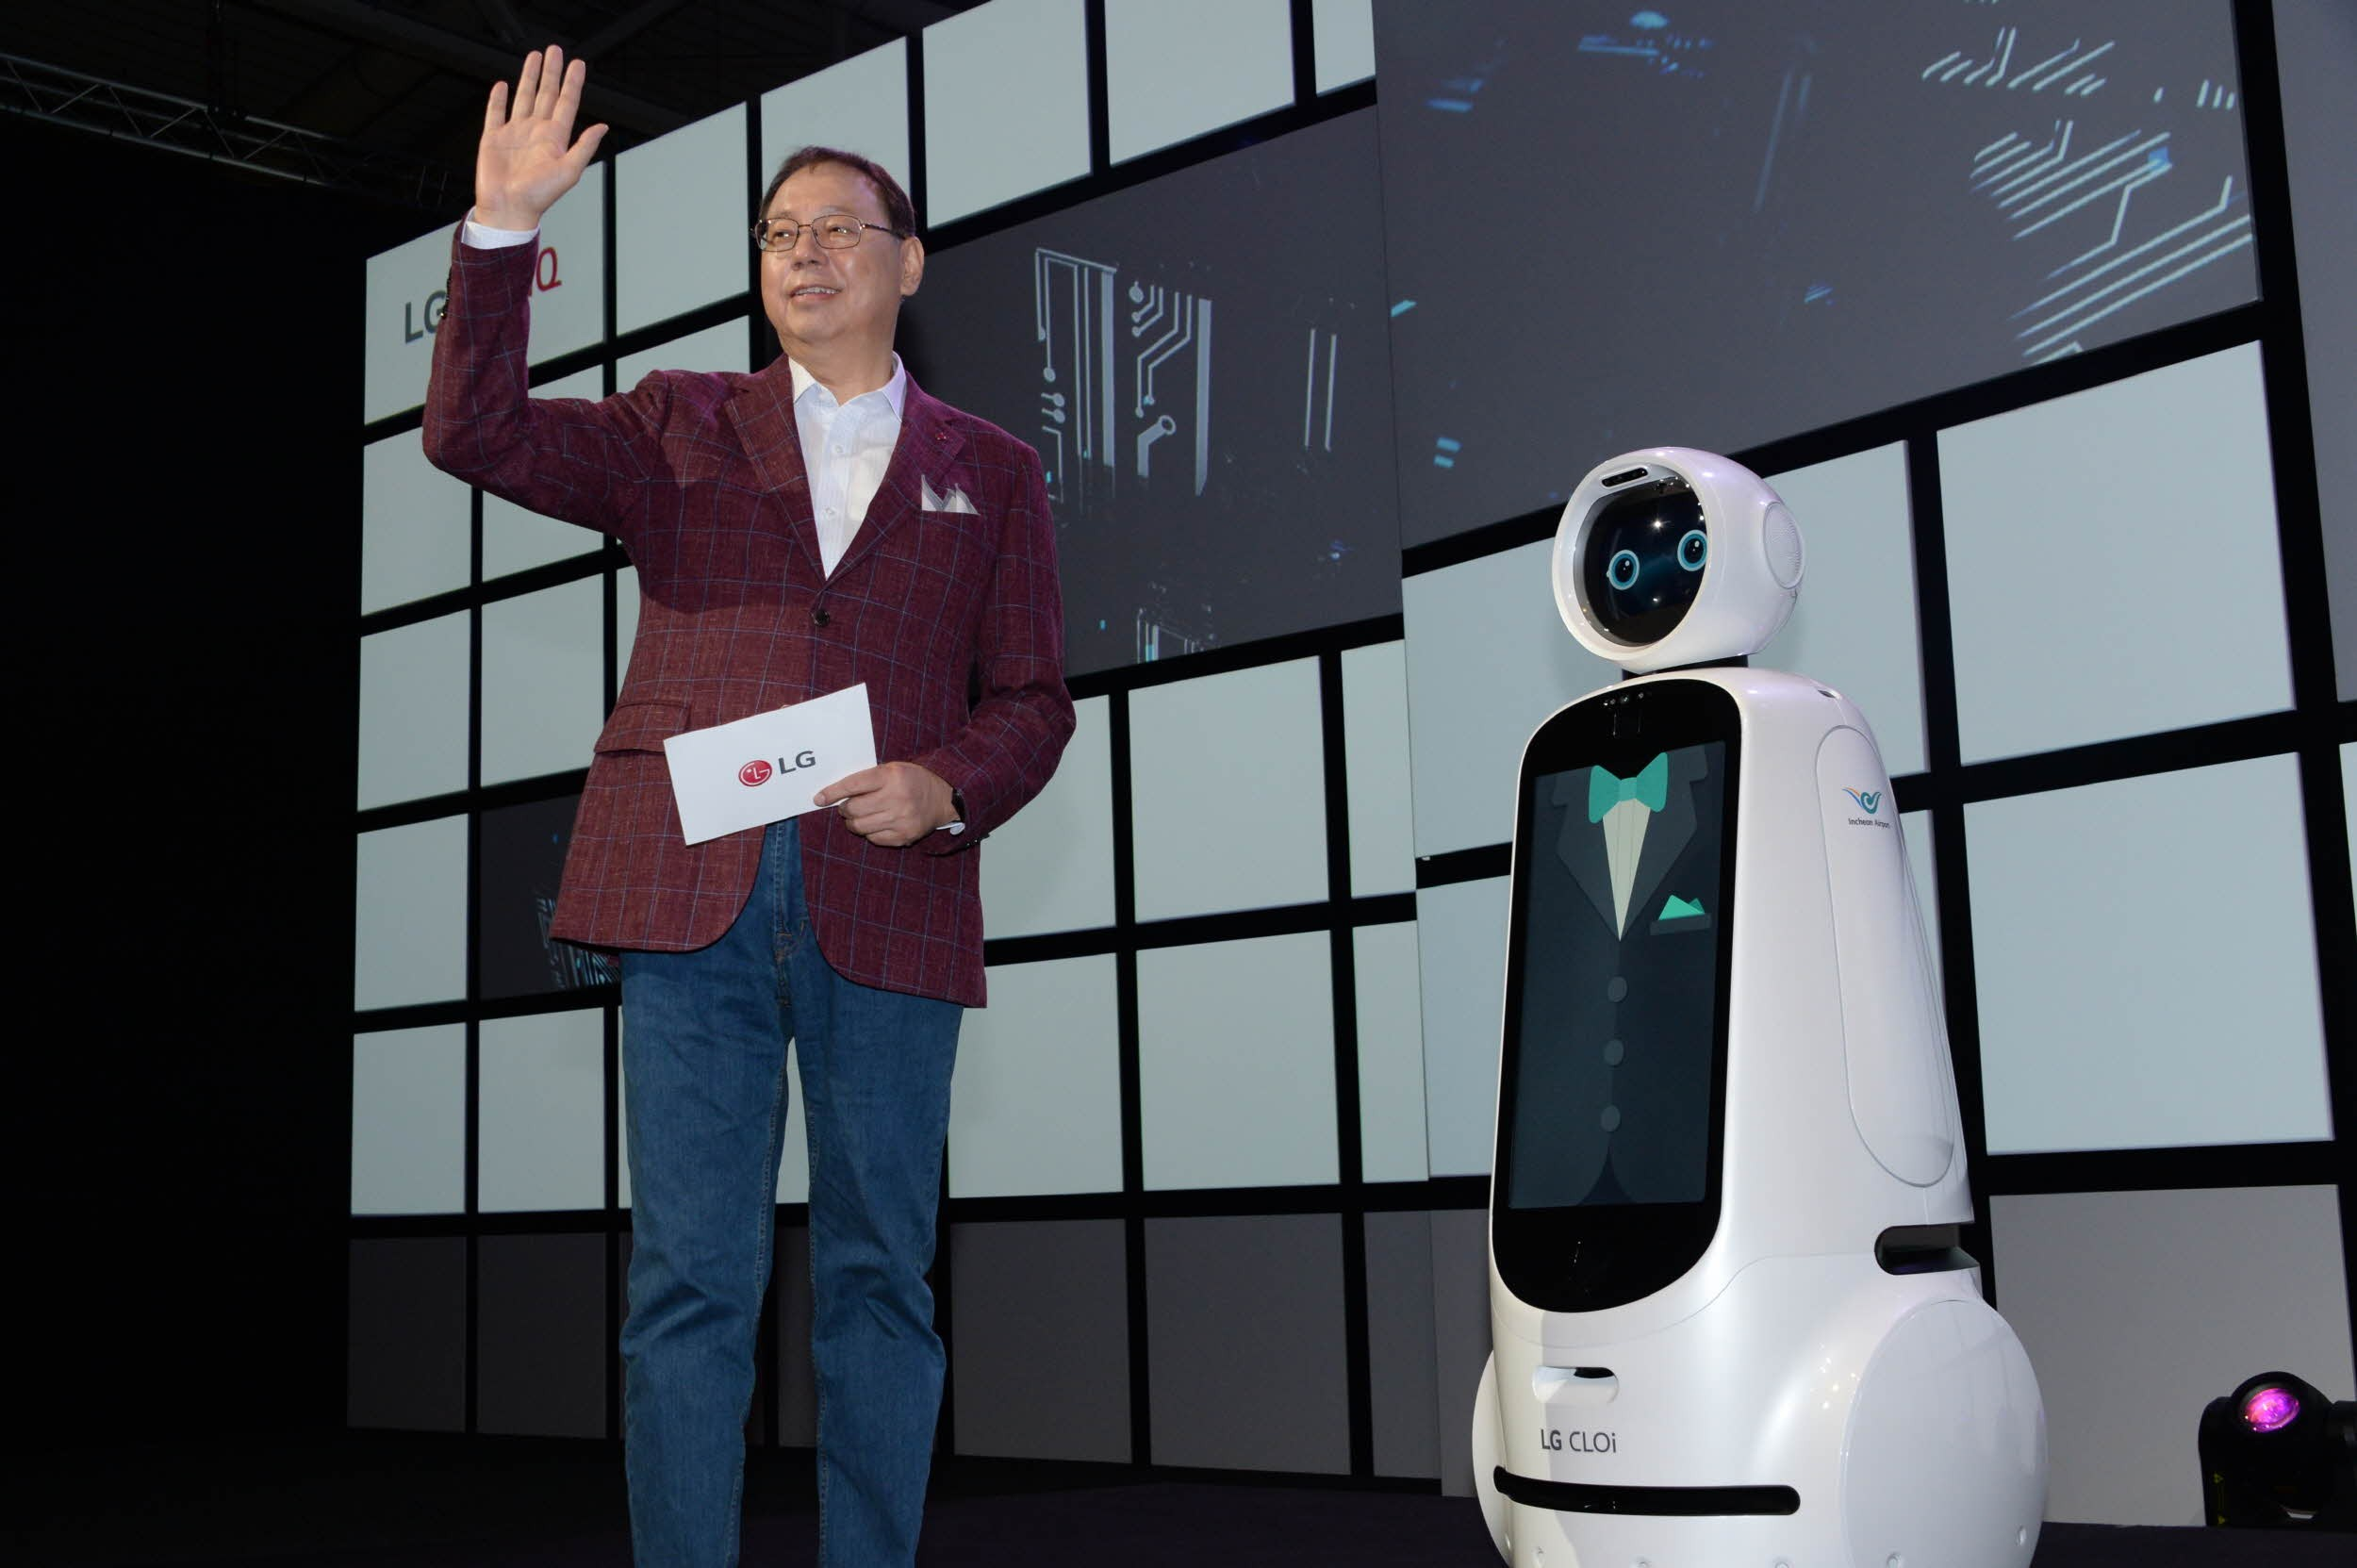 LG Electronics chief executive officer, Jo Seong-jin, stands right next to the LG CLOi robot.